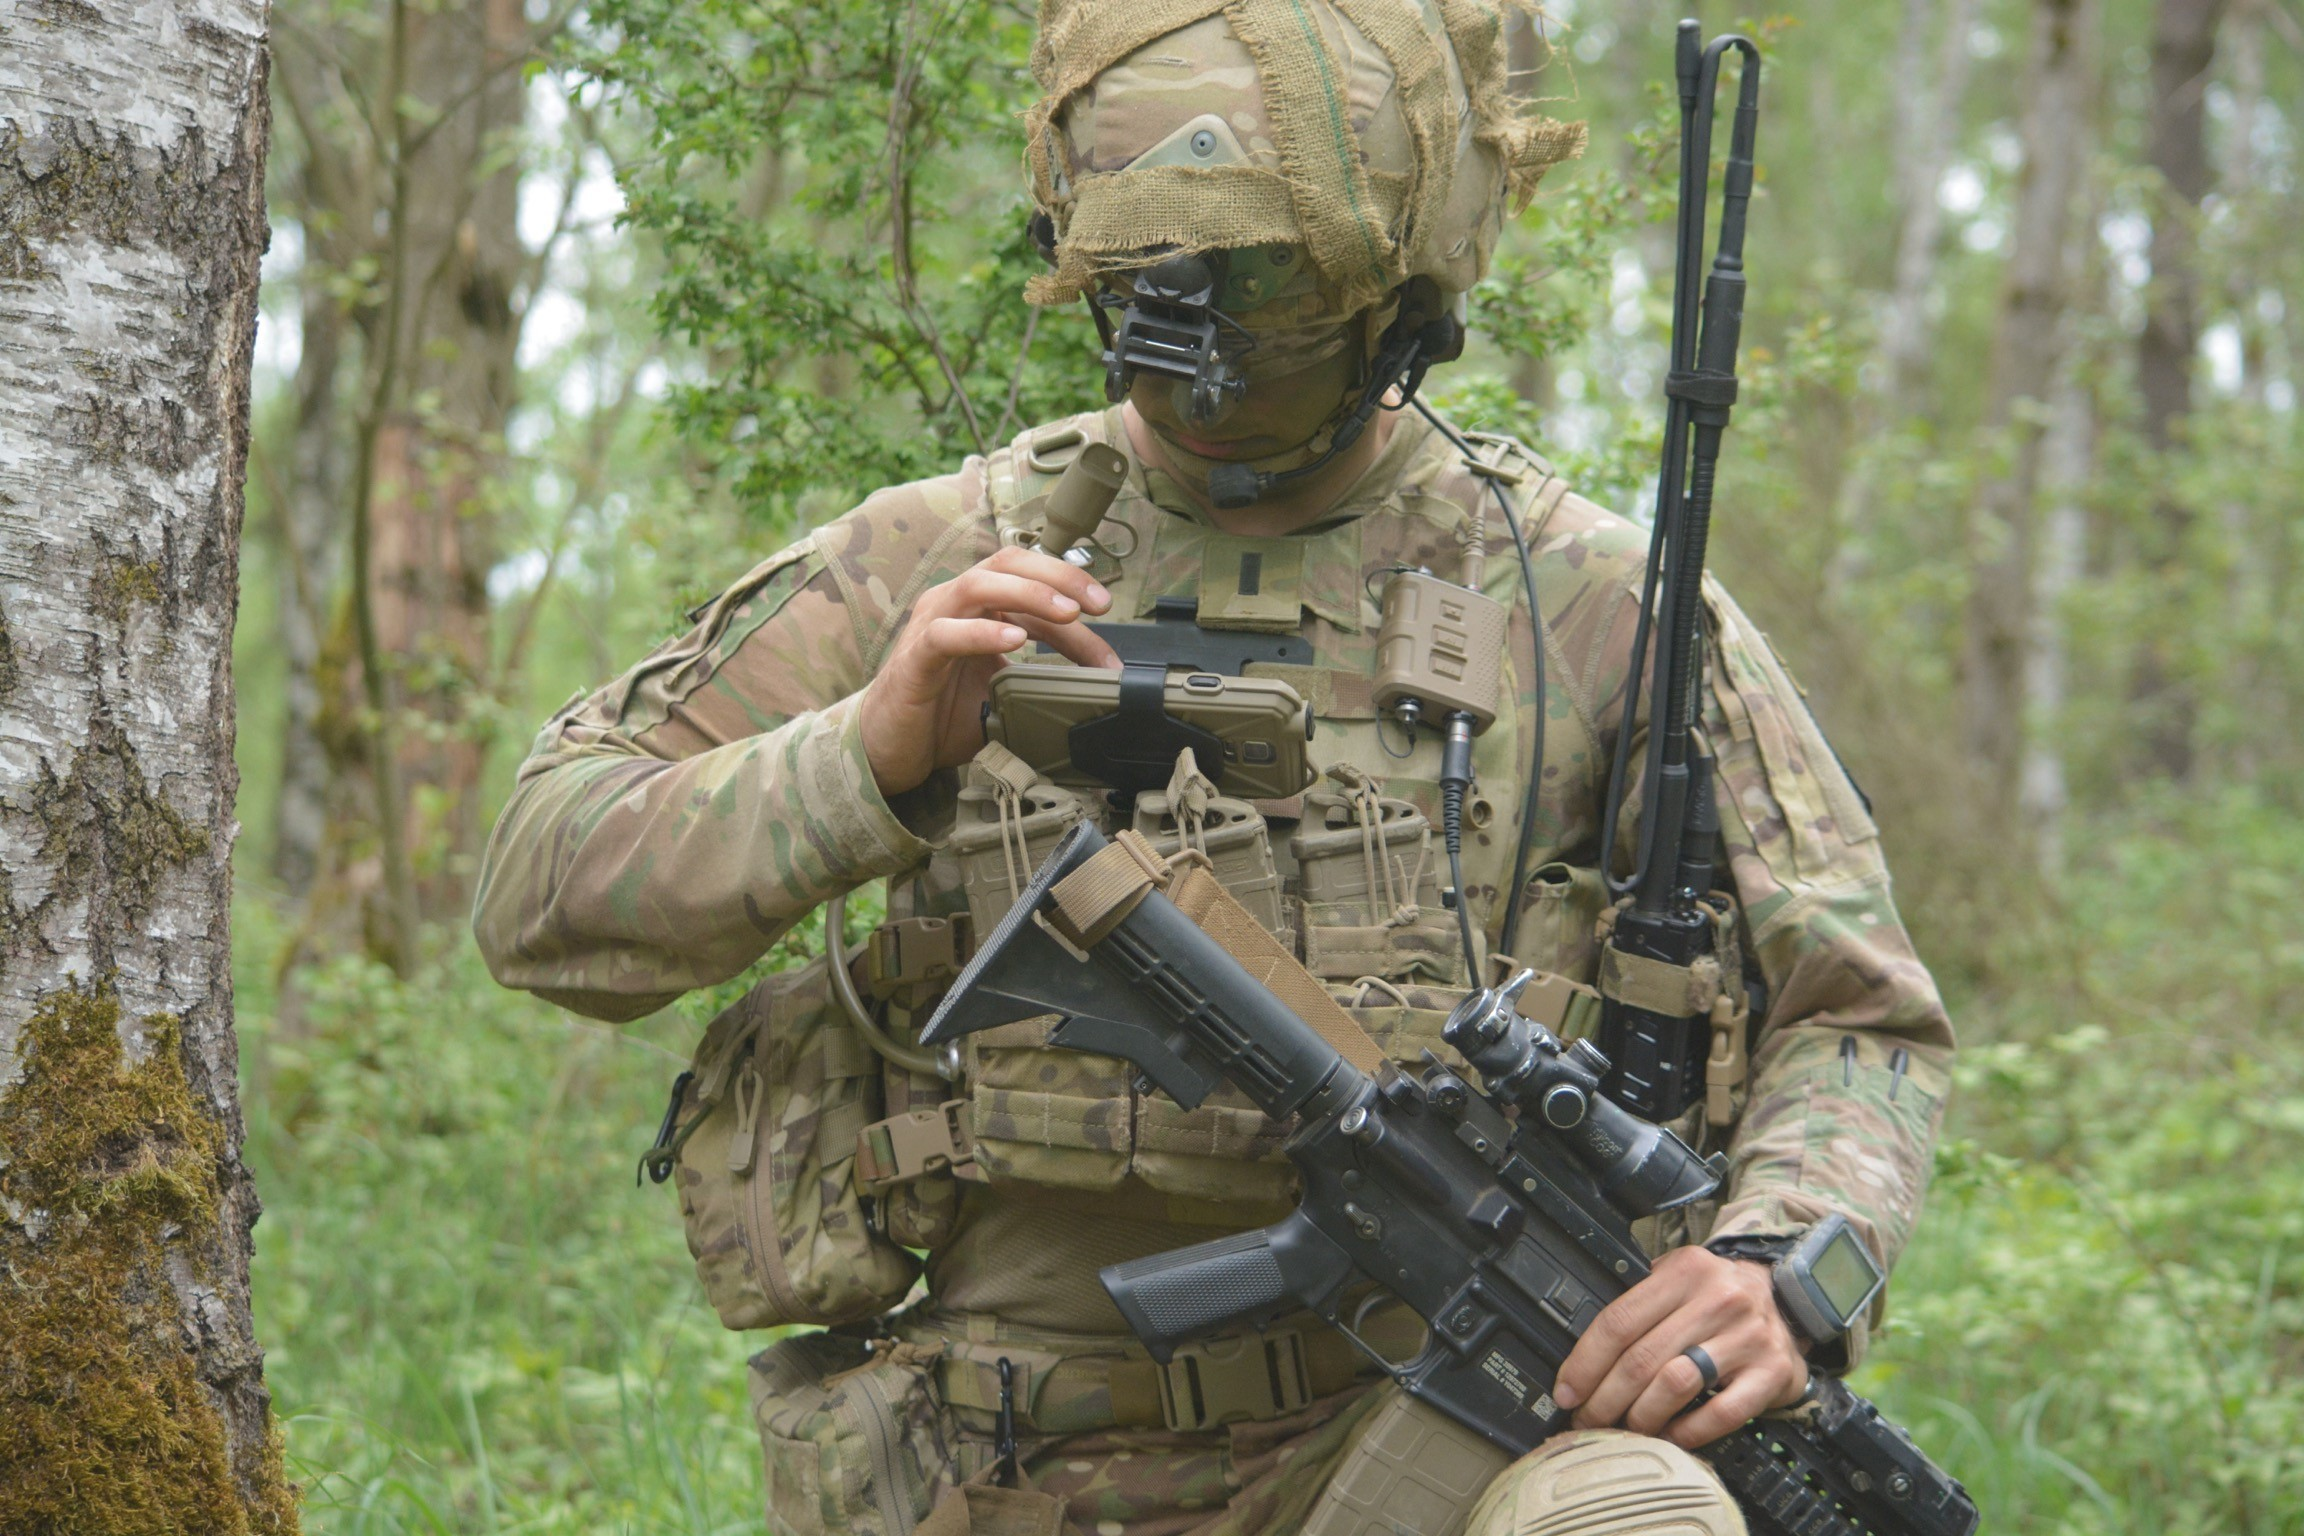 1st. Lt. Michael Austin, platoon leader for Attack Co., 1-503rd Inf. Regt., 173rd Airborne Brigade, uses the End User Device to report information to his company commander through the Integrated Tactical Network during a live-fire exercise in Grafenwoehr, Germany, May 02.